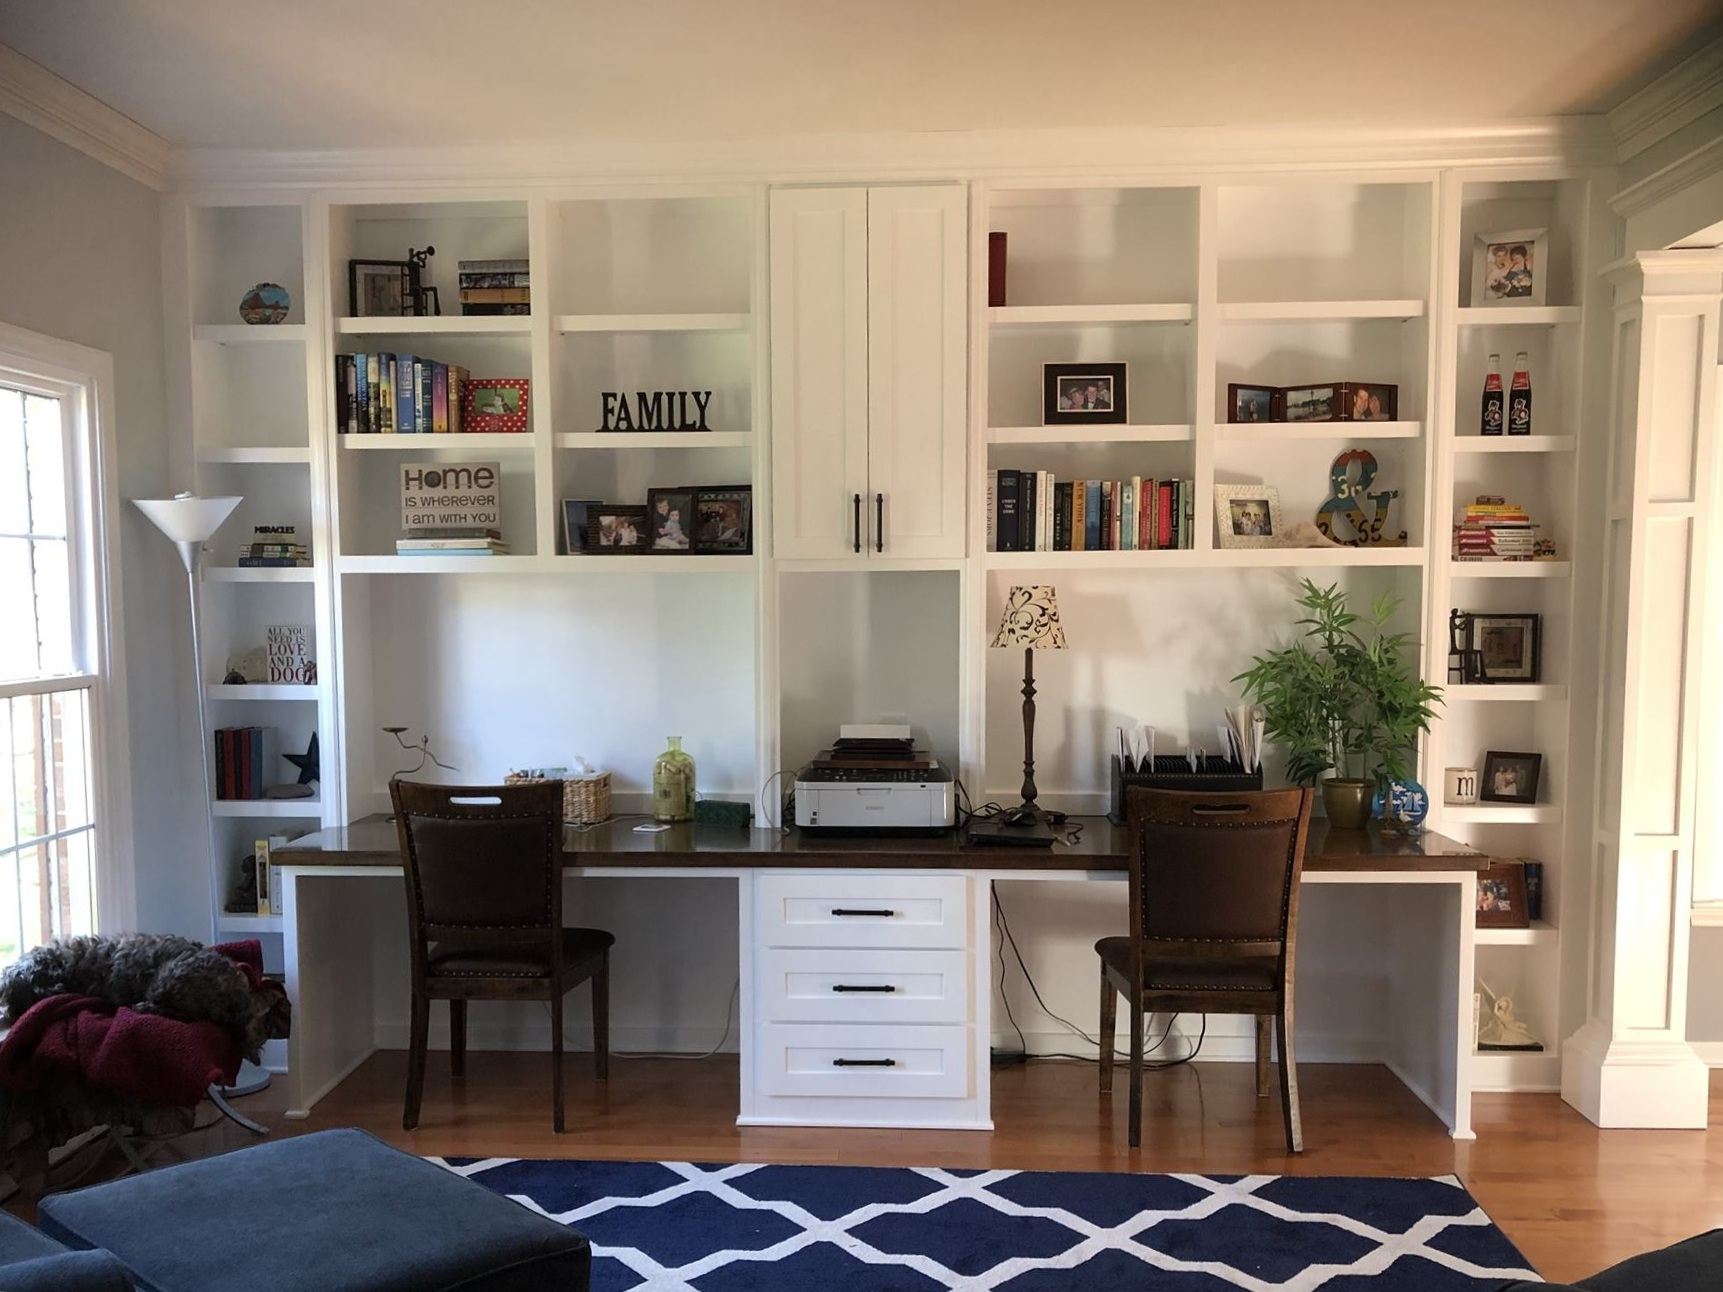 Custom Desk with Adjustable Shelves, Shaker Doors & Drawers, Bookcases, Printer Opening & Stain Countertop